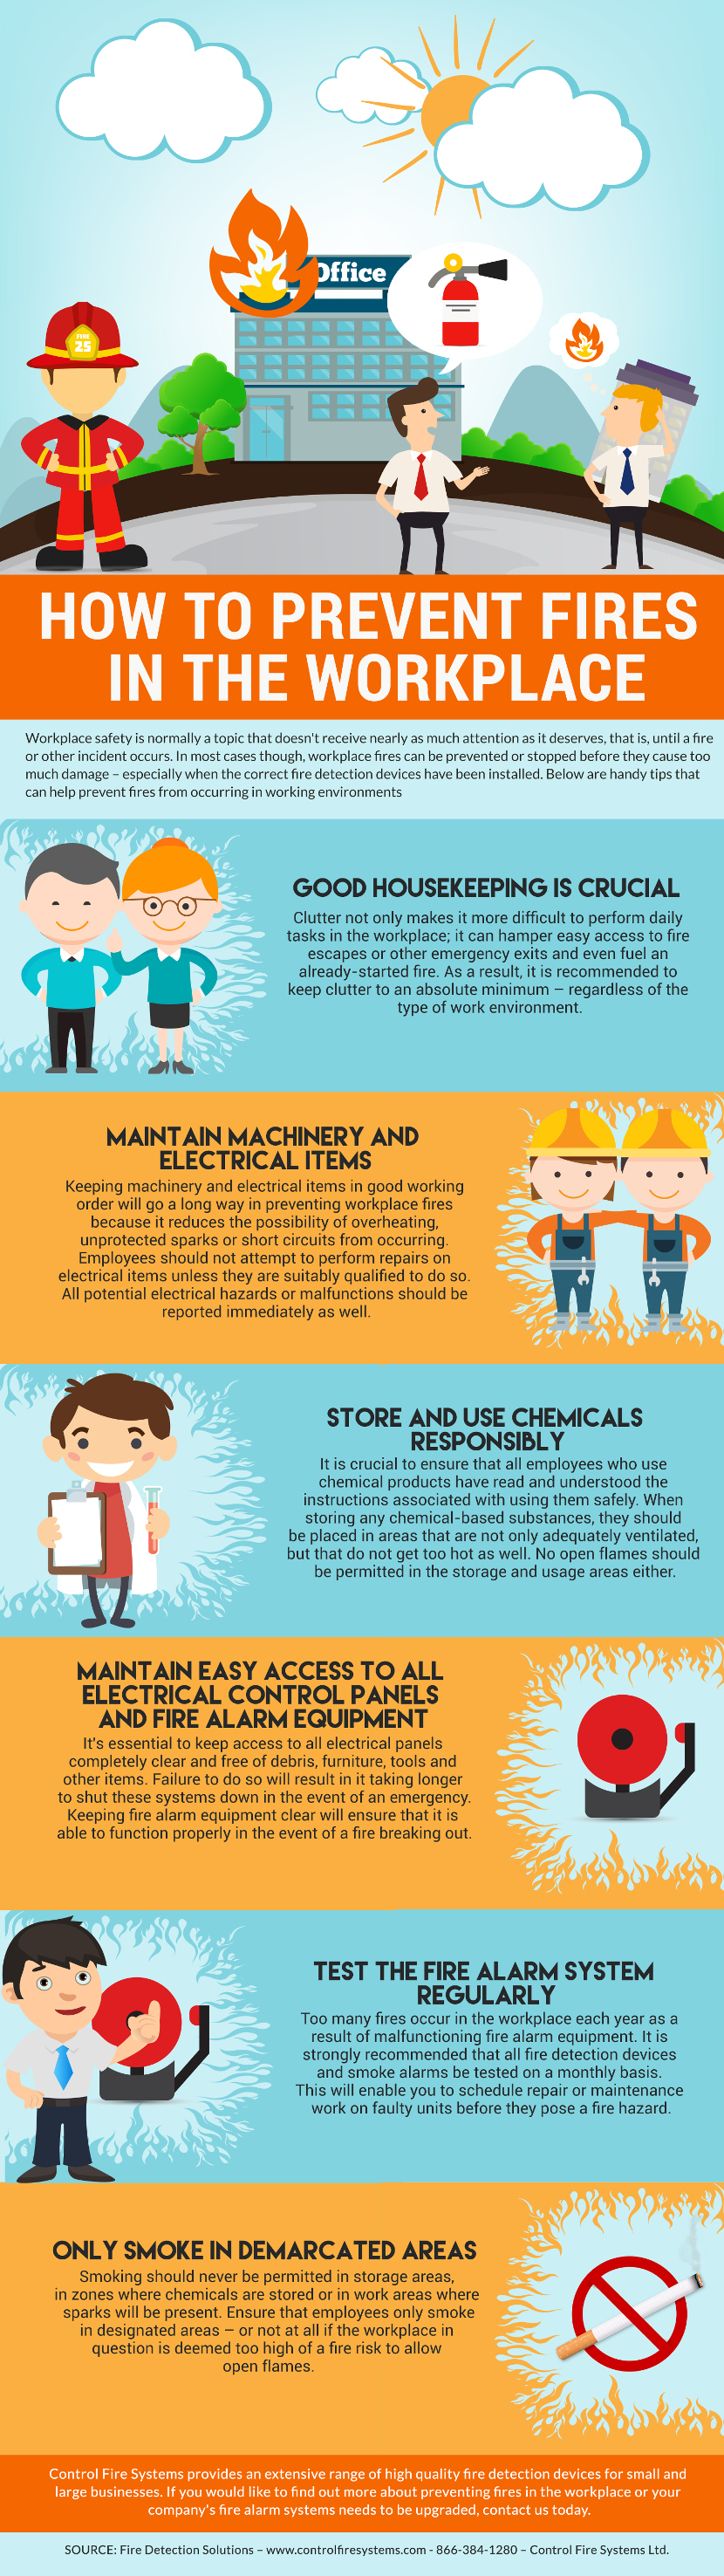 How to Prevent Fires in the Workplace - Control Fire Systems Ifographic